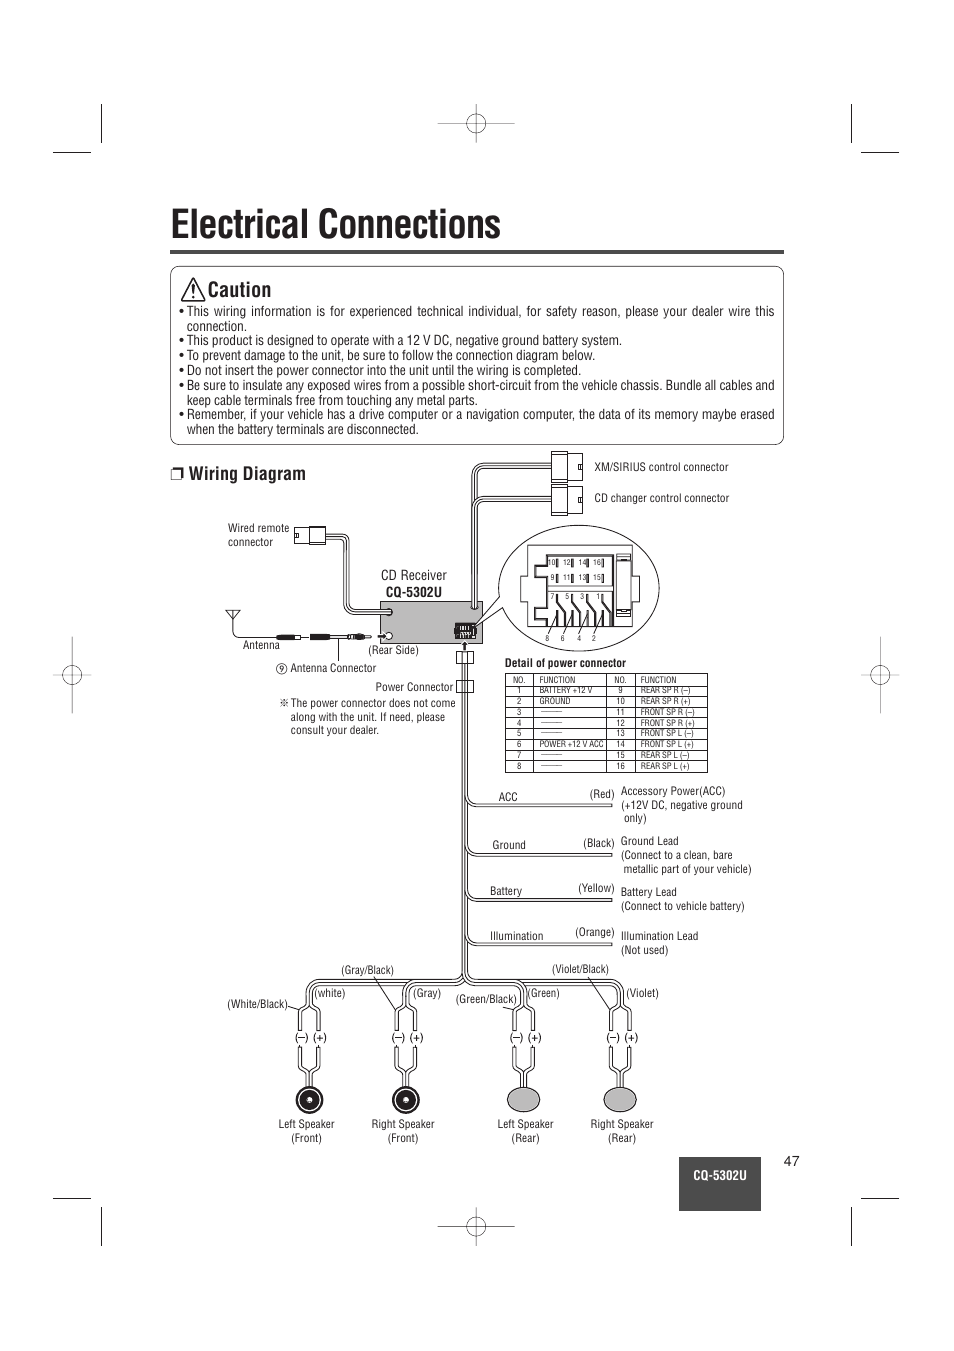 hight resolution of electrical connections caution wiring diagram panasonic cq 5302u wiring diagram ac panasonic electrical connections